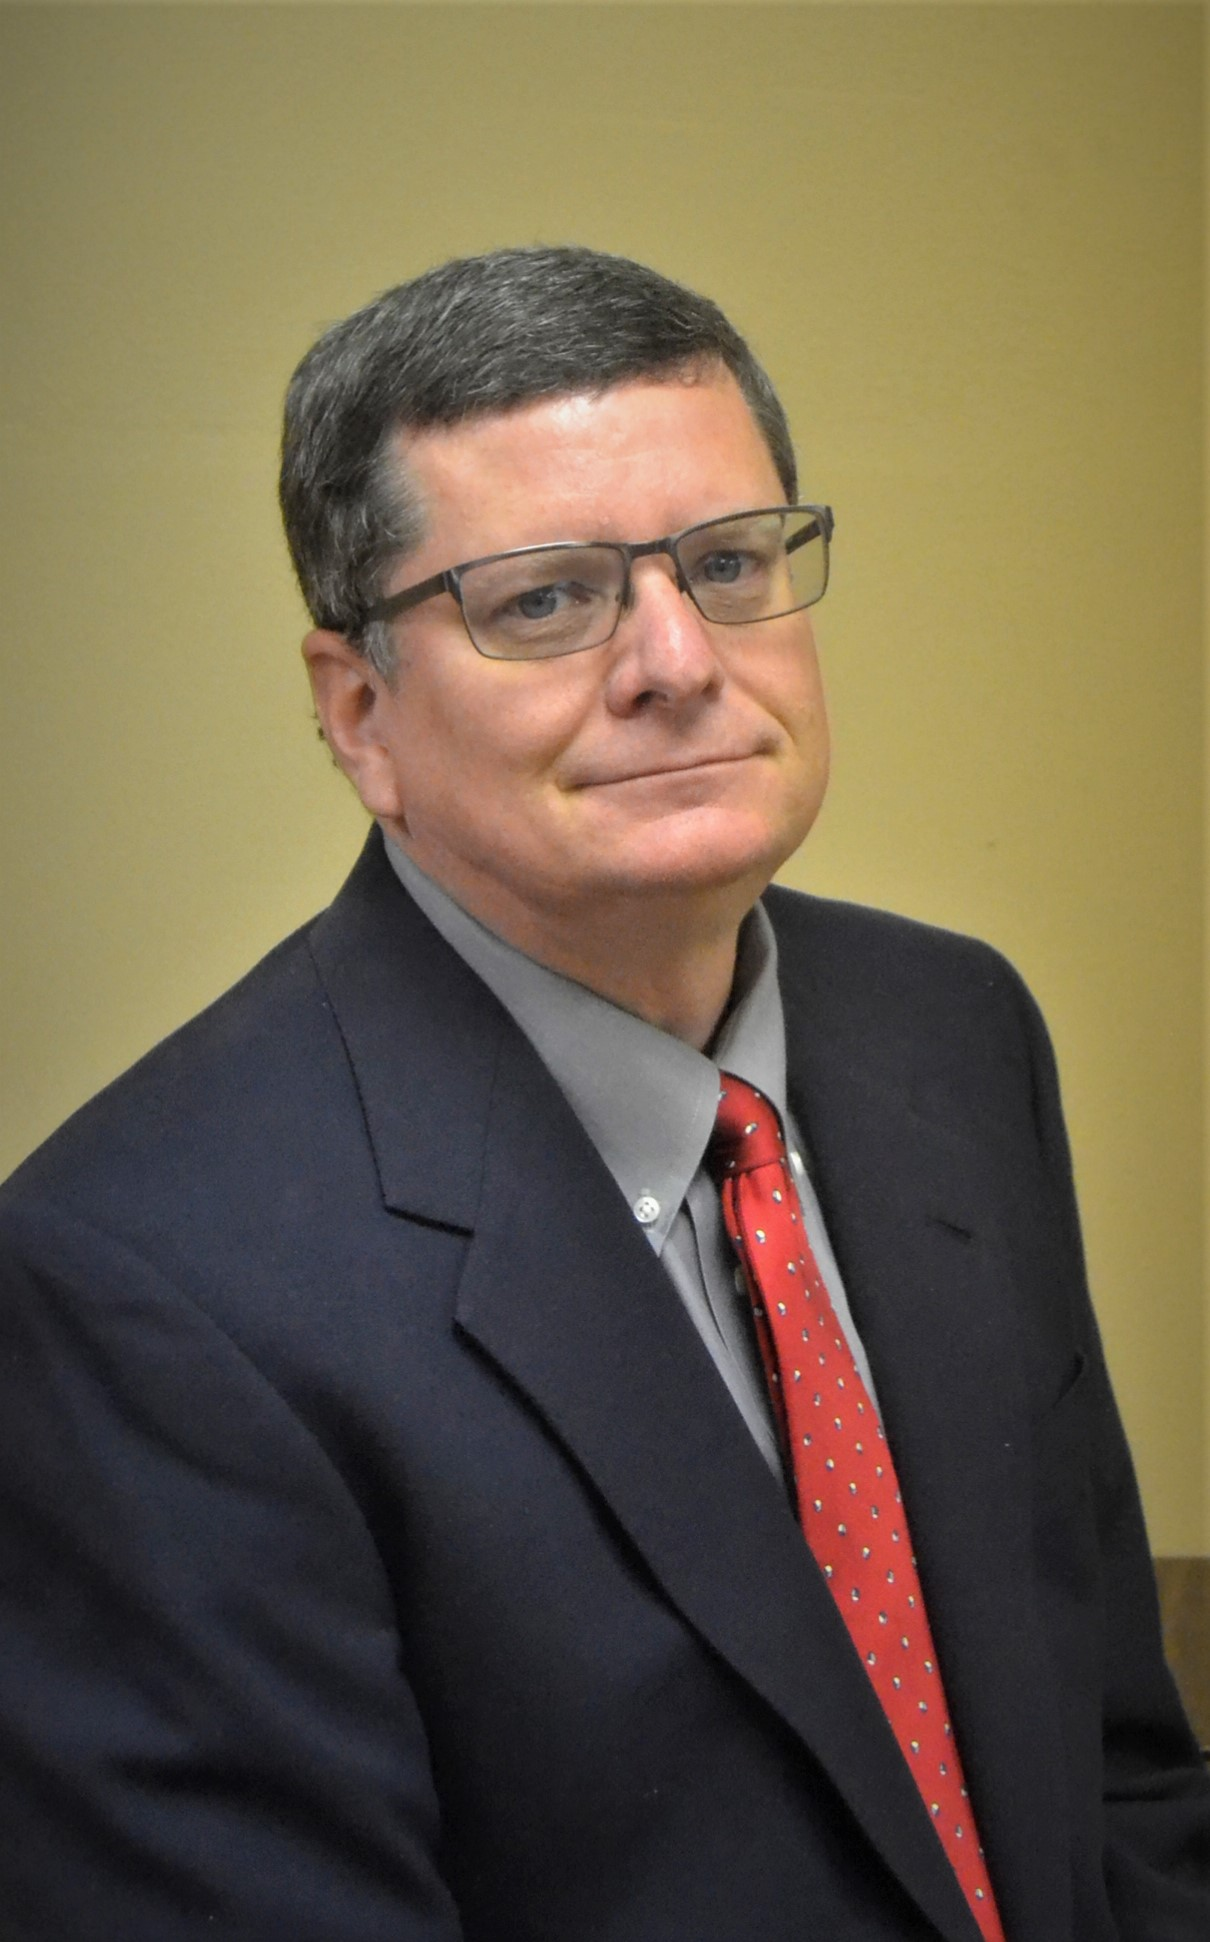 ALDERMAN BRUCE FLEMING  Alderman Bruce Fleming is a long time resident of Friona, Texas. He was elected into office May of 2019 and is currently serving in year one of his two-year term.